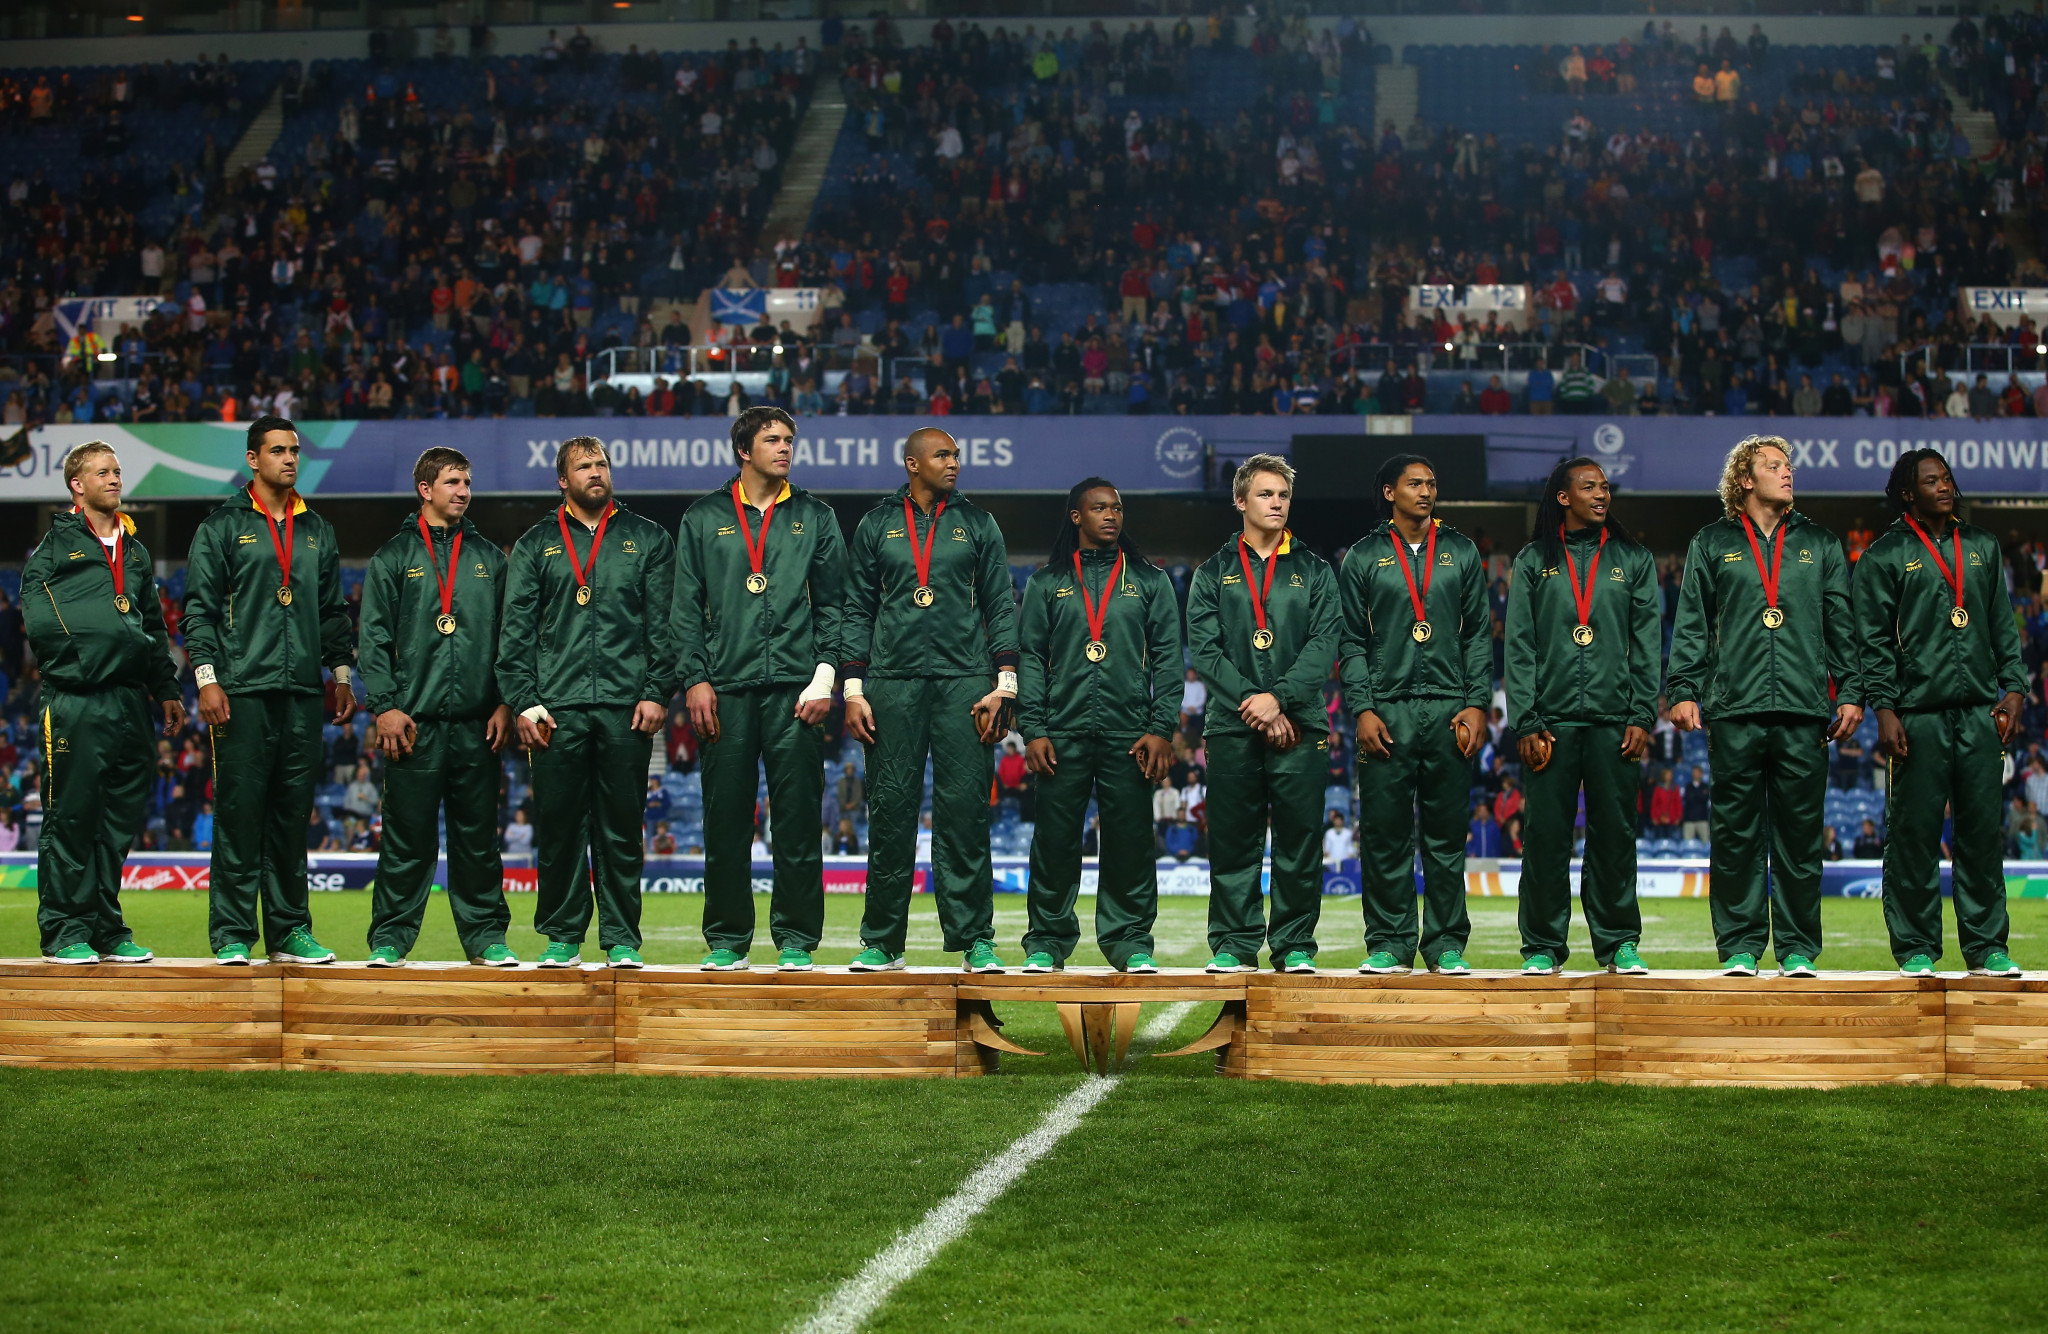 South Africa are the defending men's champions after winning at Glasgow 2014 ©Getty Images